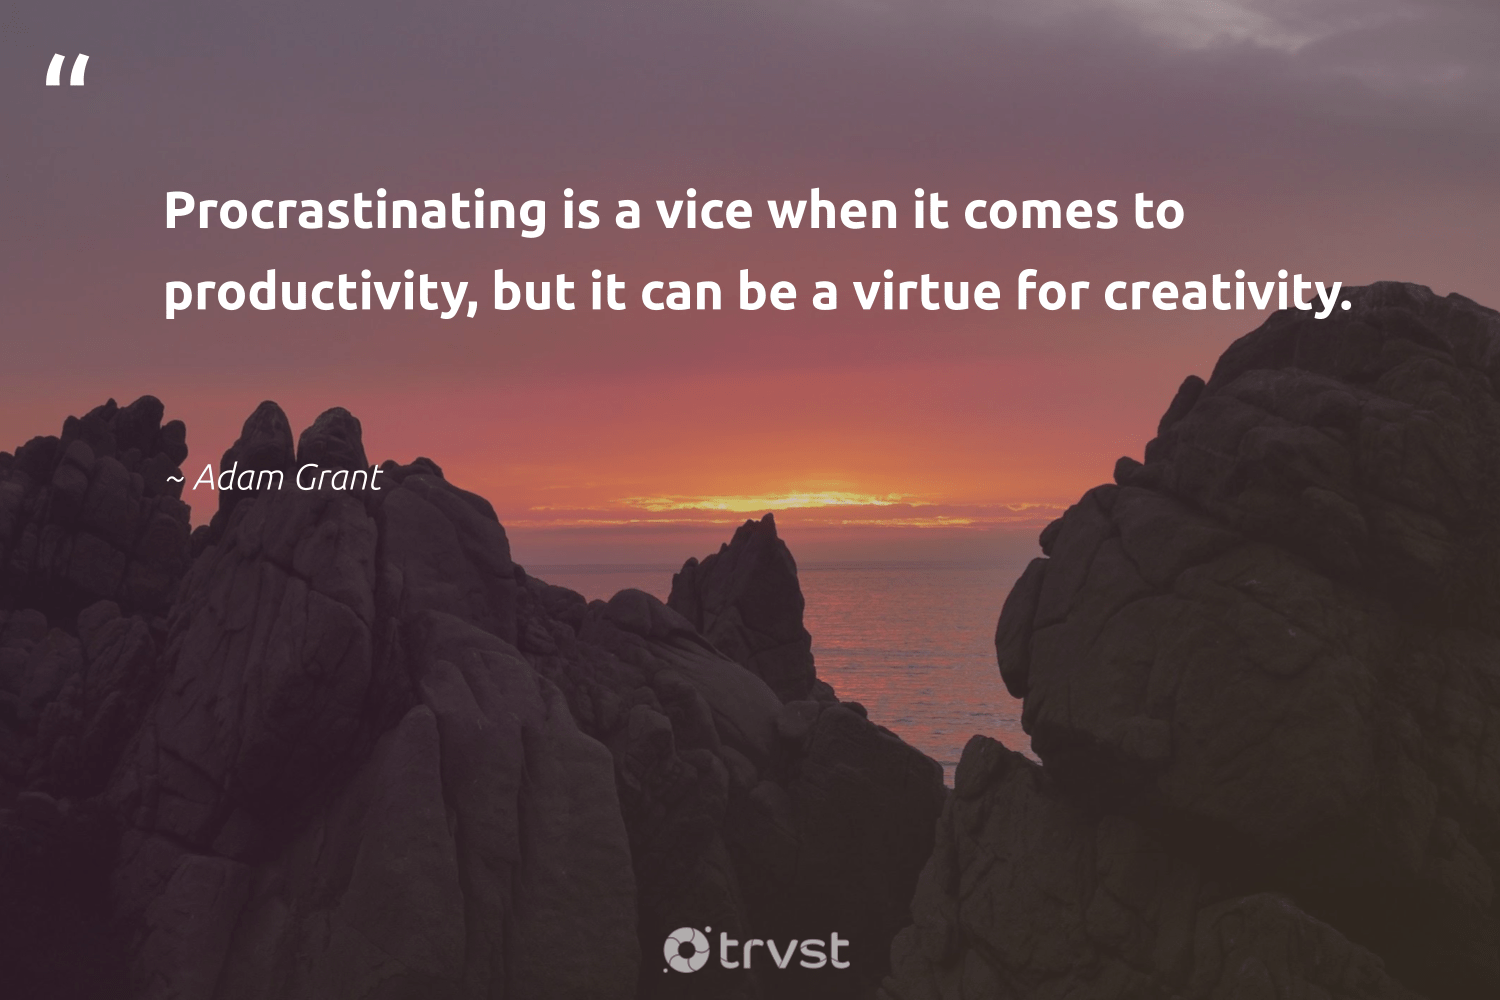 """""""Procrastinating is a vice when it comes to productivity, but it can be a virtue for creativity.""""  - Adam Grant #trvst #quotes #productivity #creativity #timemanagement #begreat #softskills #collectiveaction #mostwontiwill #nevergiveup #futureofwork #bethechange"""